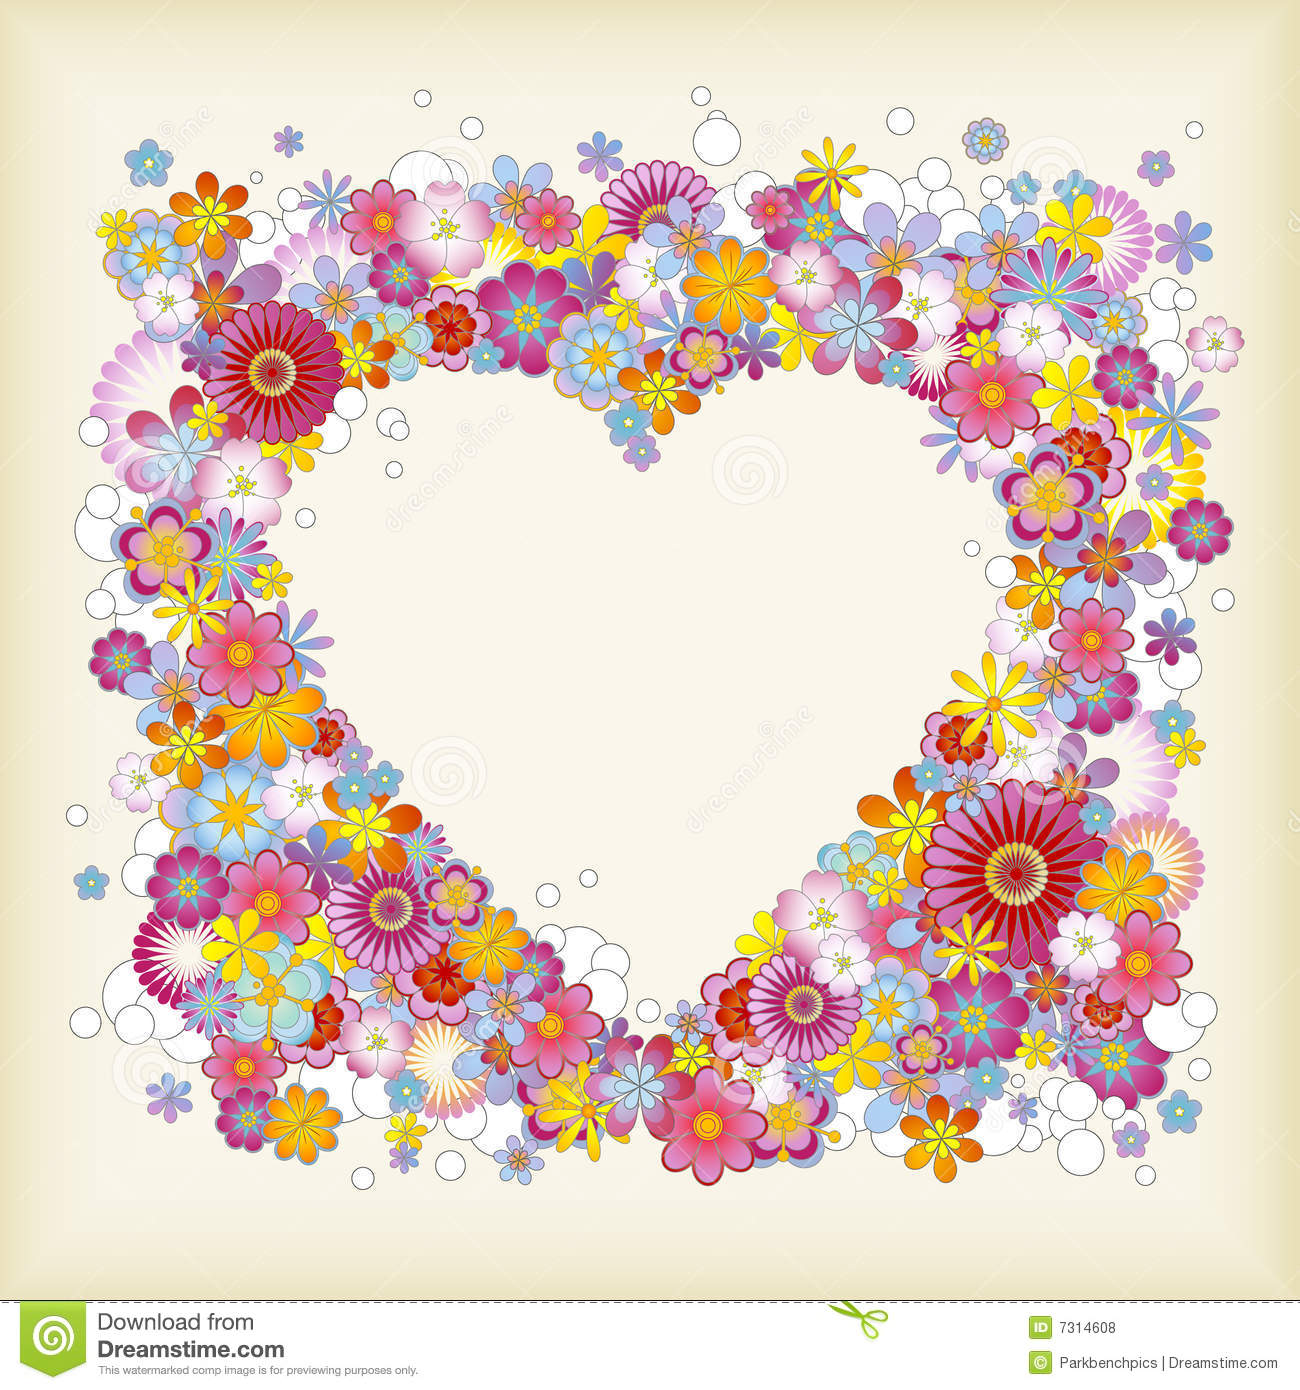 Heart-shaped floral frame stock vector. Illustration of greetings ...